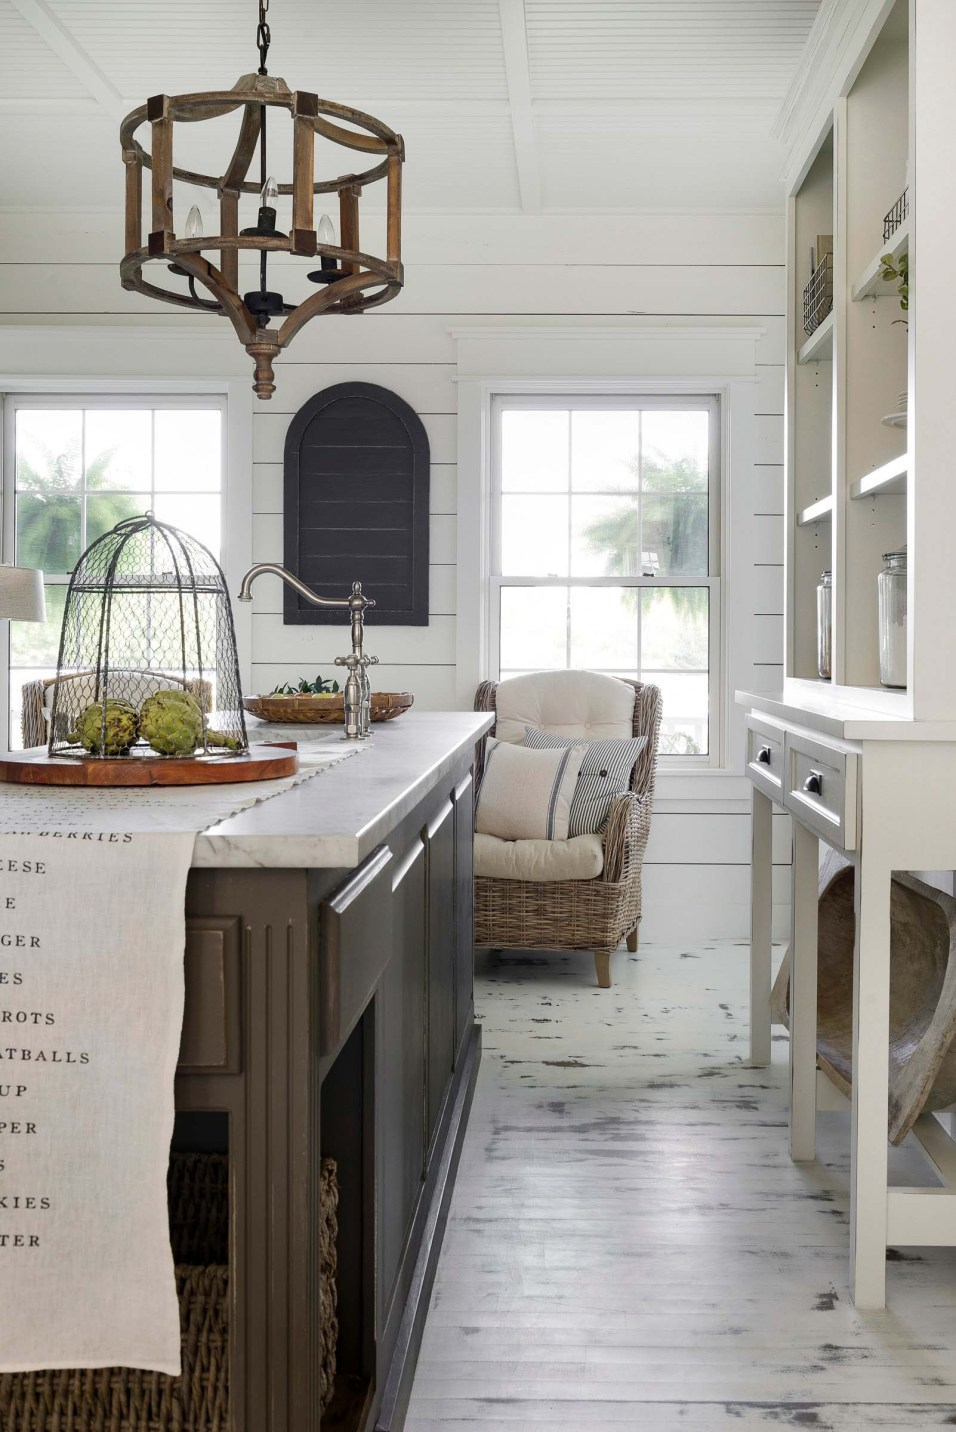 Beautiful Chaos Farmhouse Kitchen with Salvaged Furniture